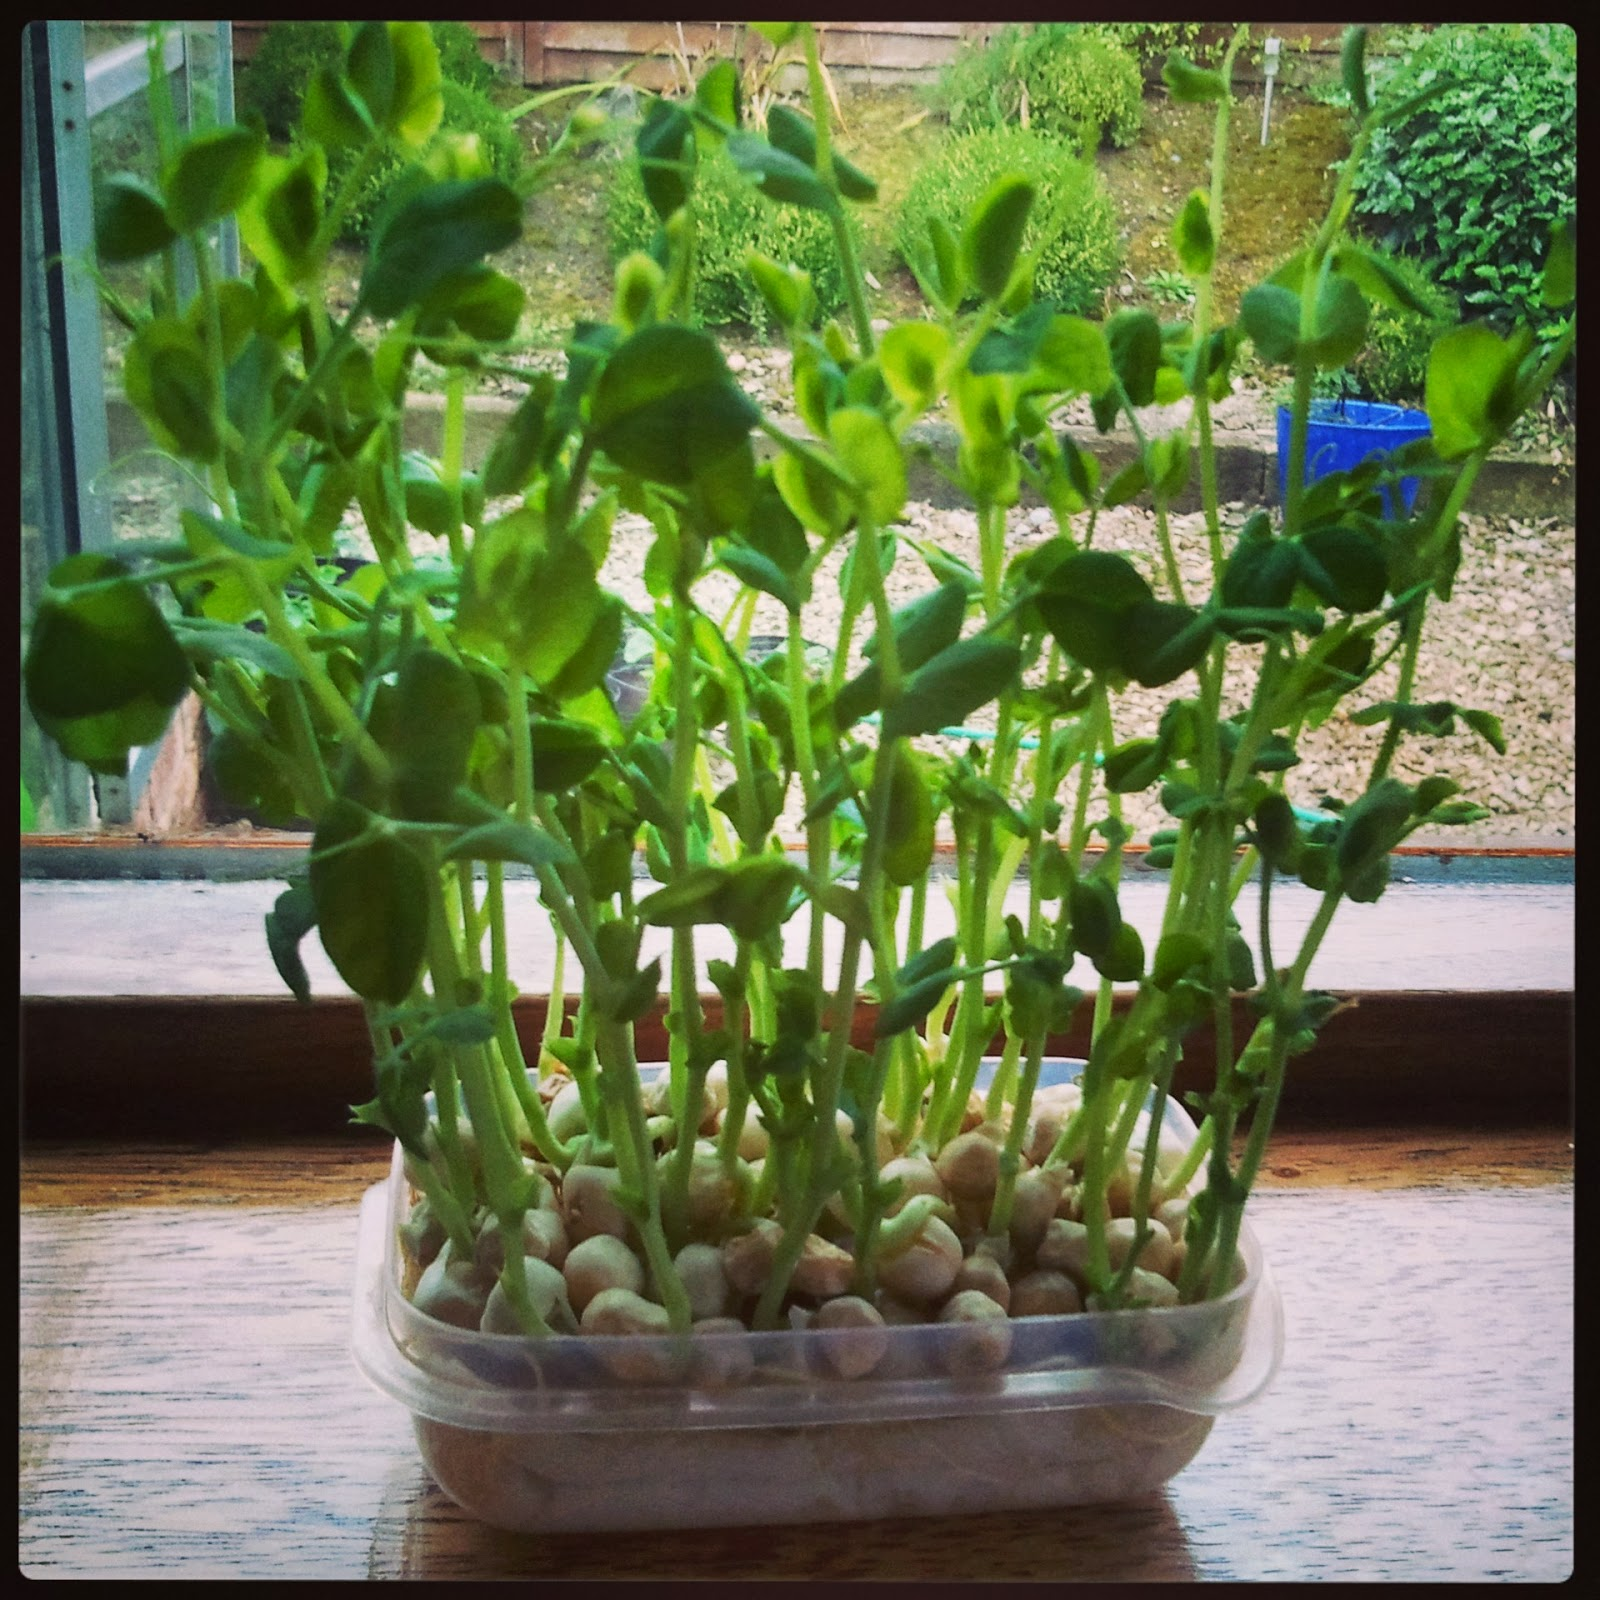 You Can Grow Your Own Groceries At Home From Old Kitchen: Stirring Food: GROW Your Own PEA SHOOTS